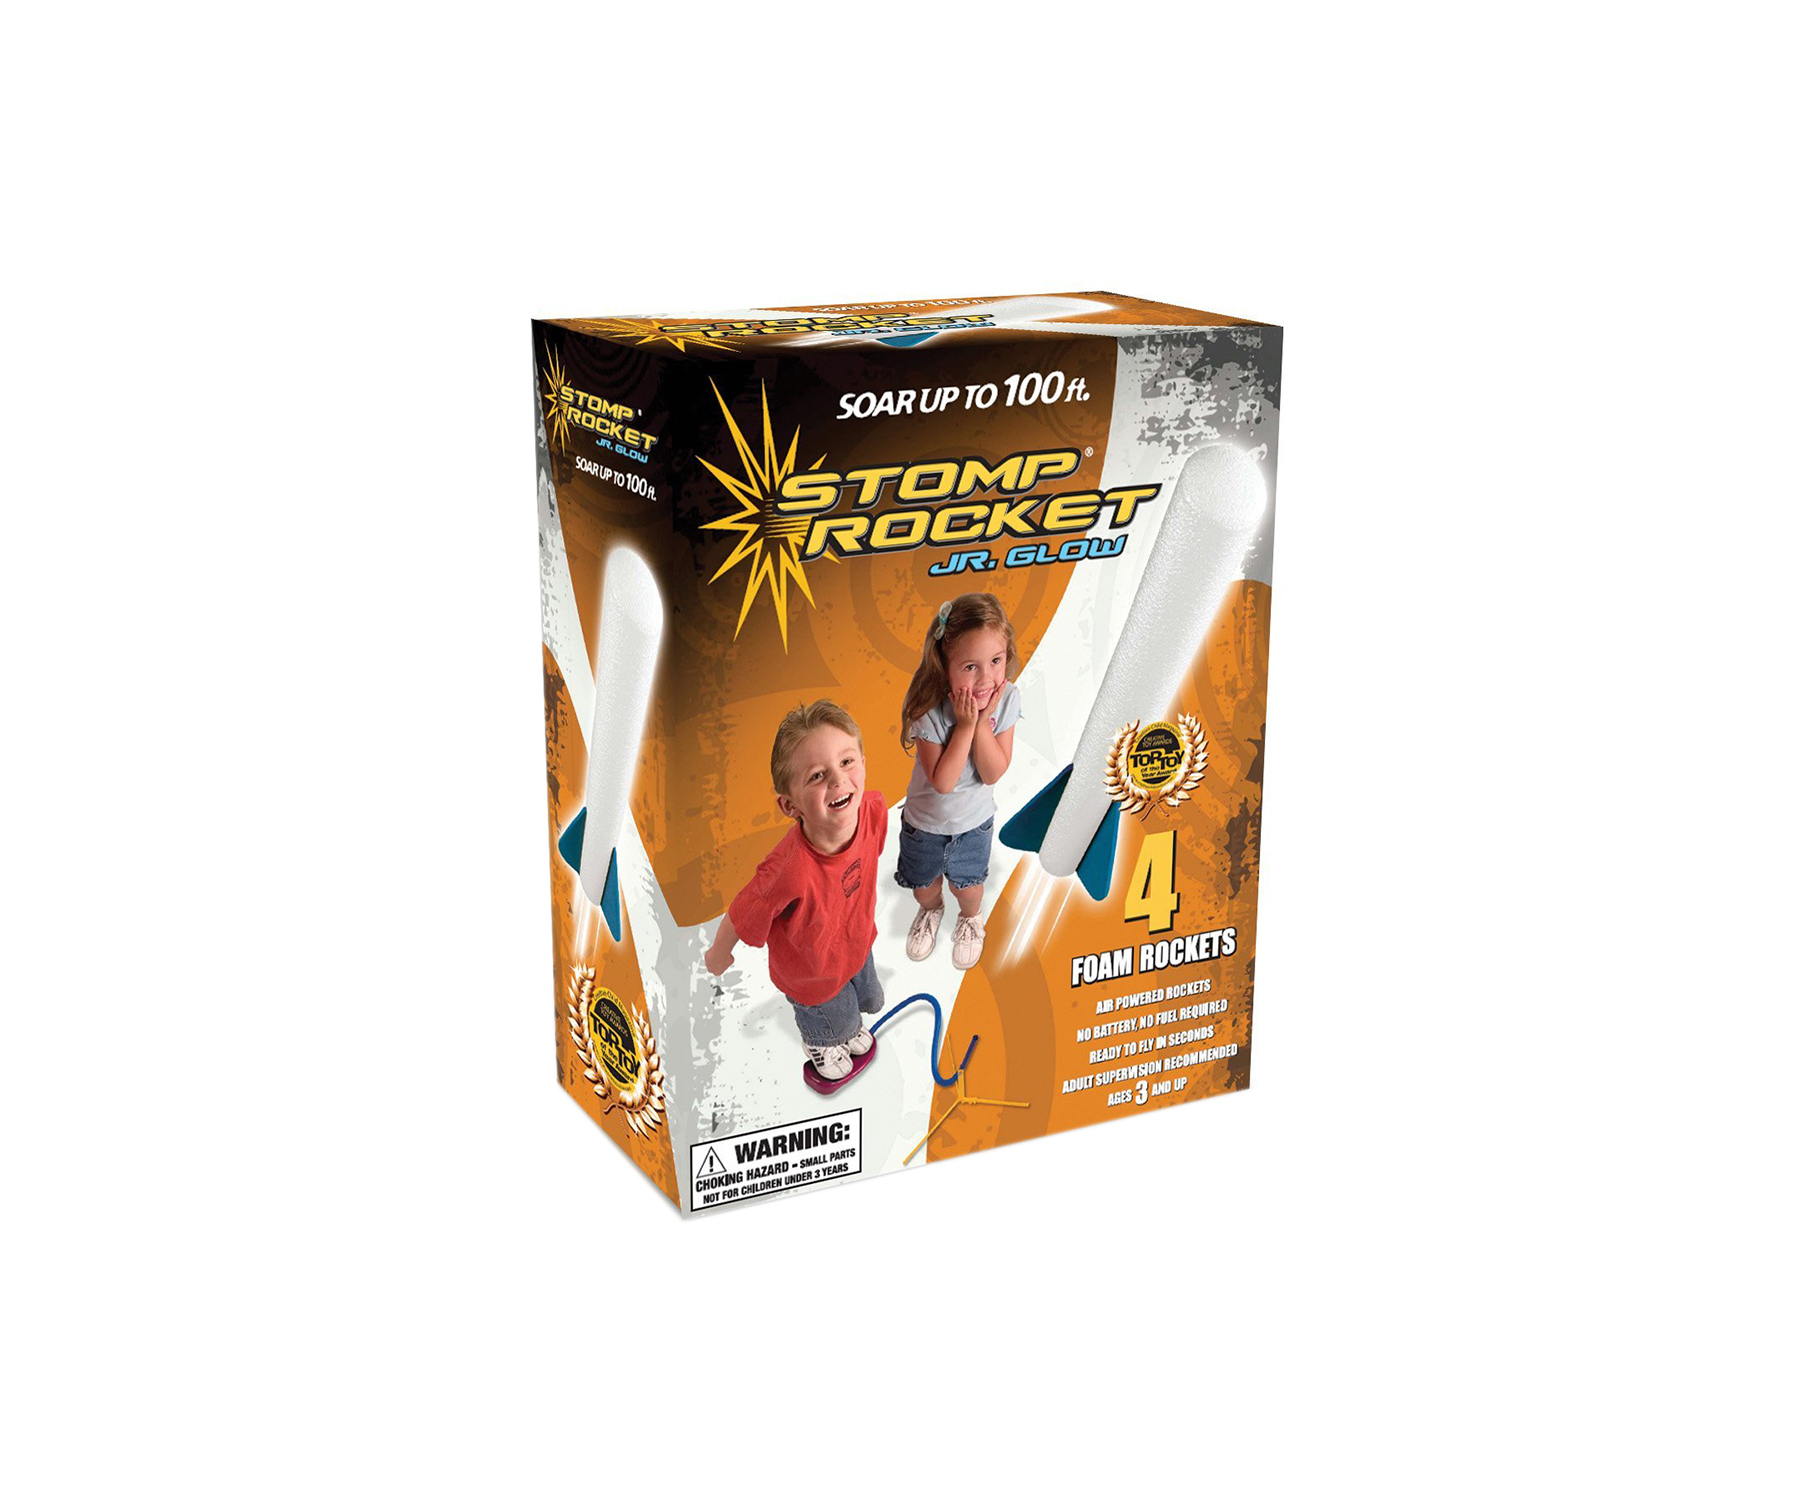 stomp-rocket-jr-glow-kit